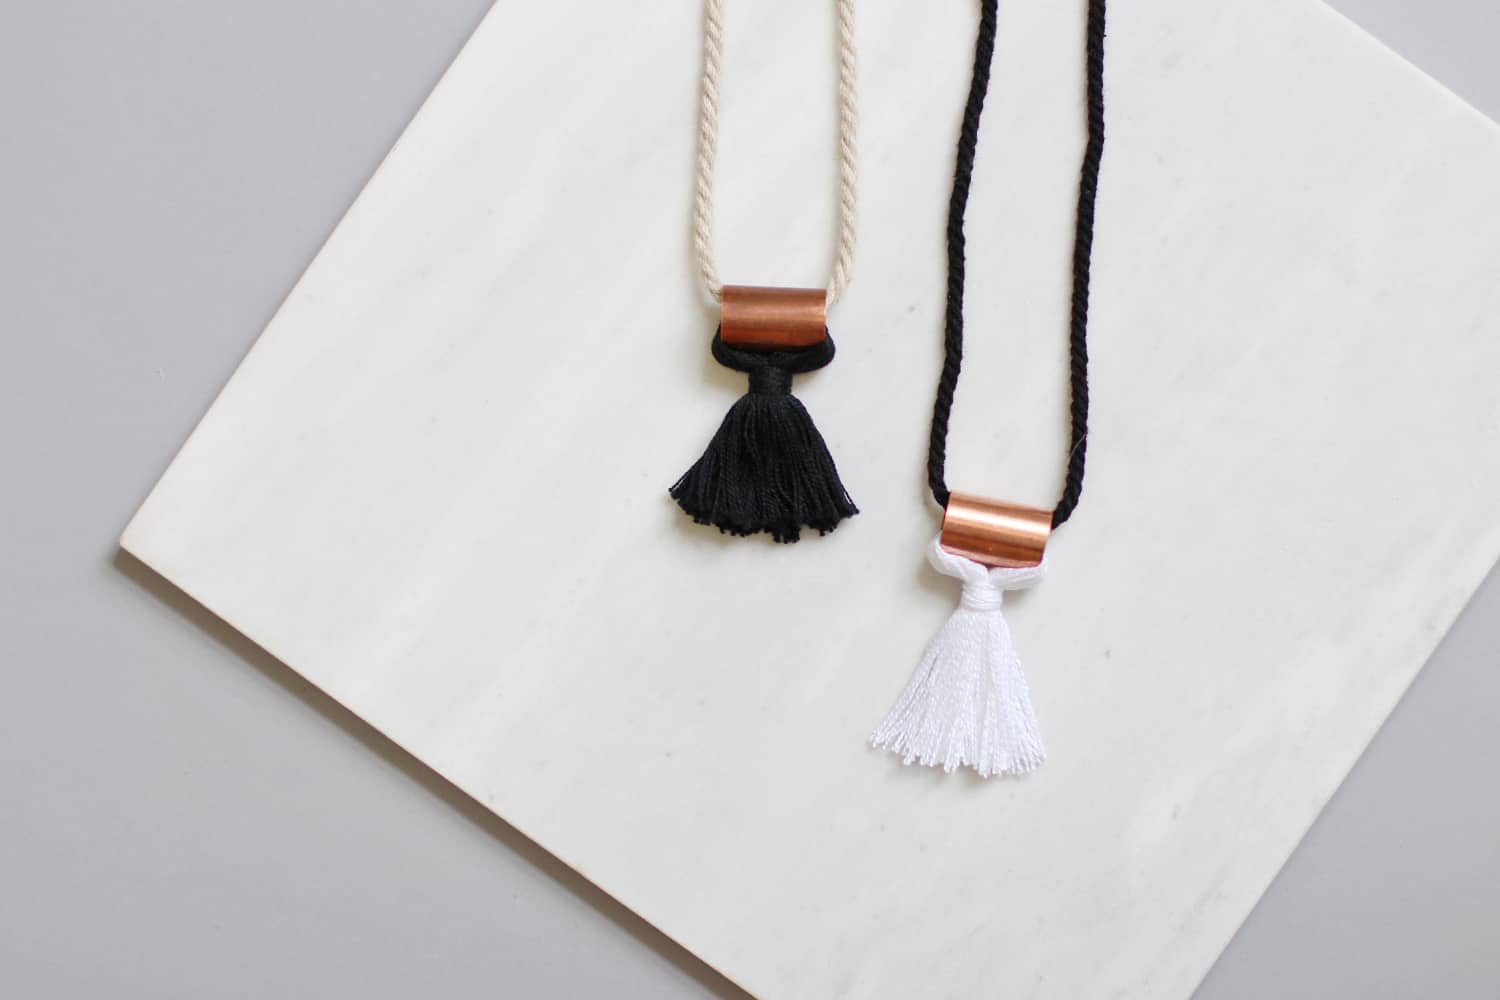 Rope tassel necklace